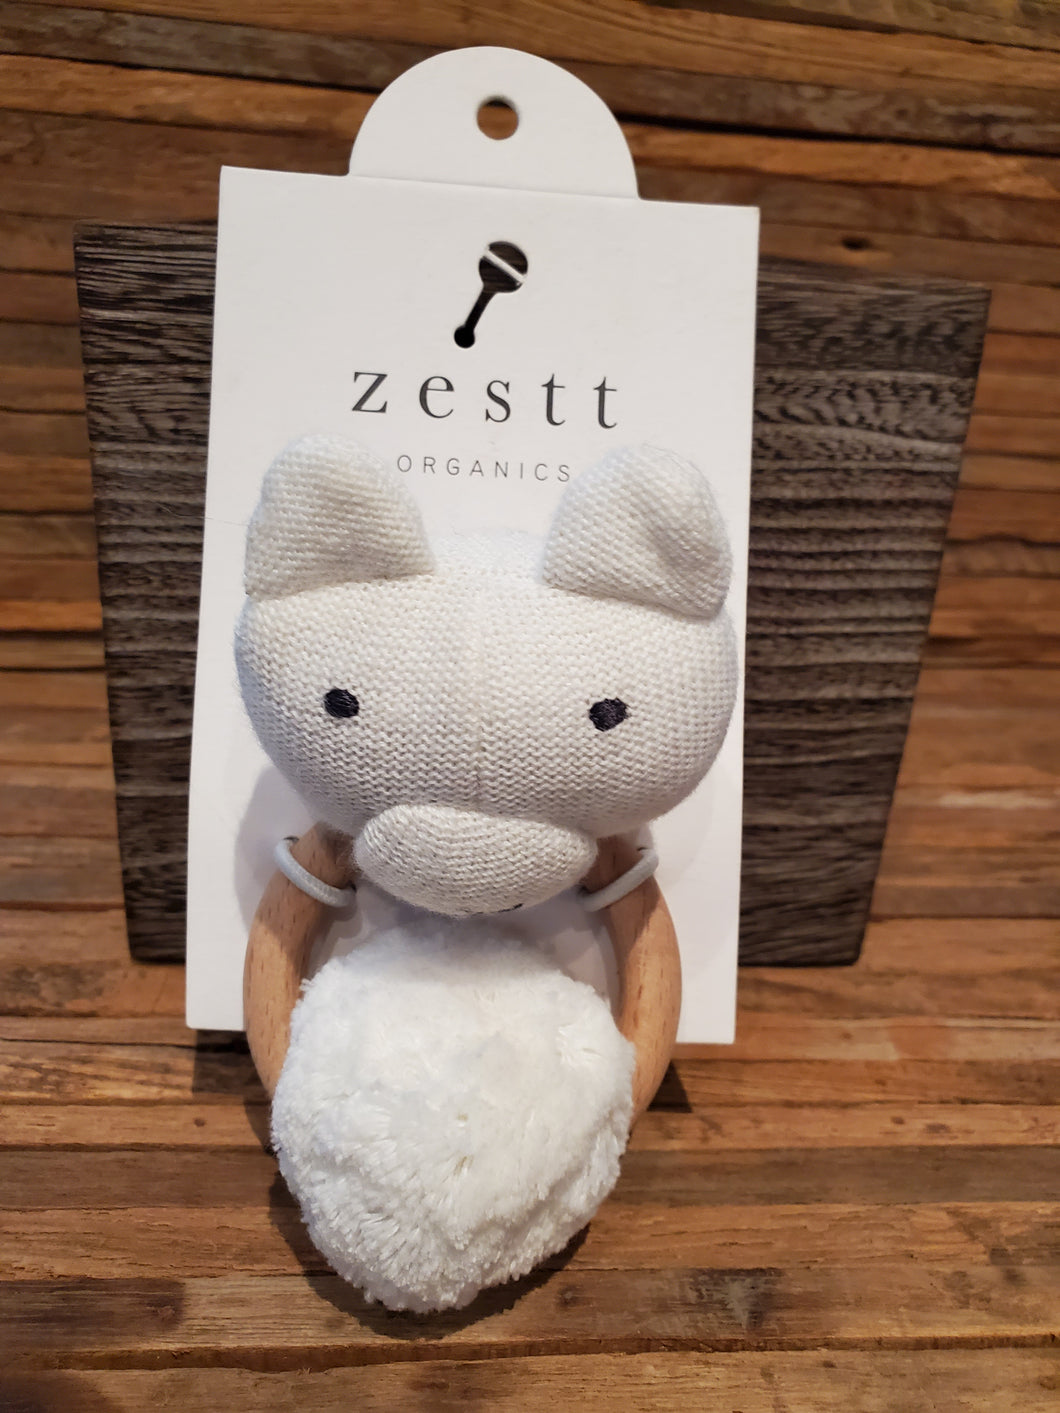 Zestt Organics Cotton Bear Rattle